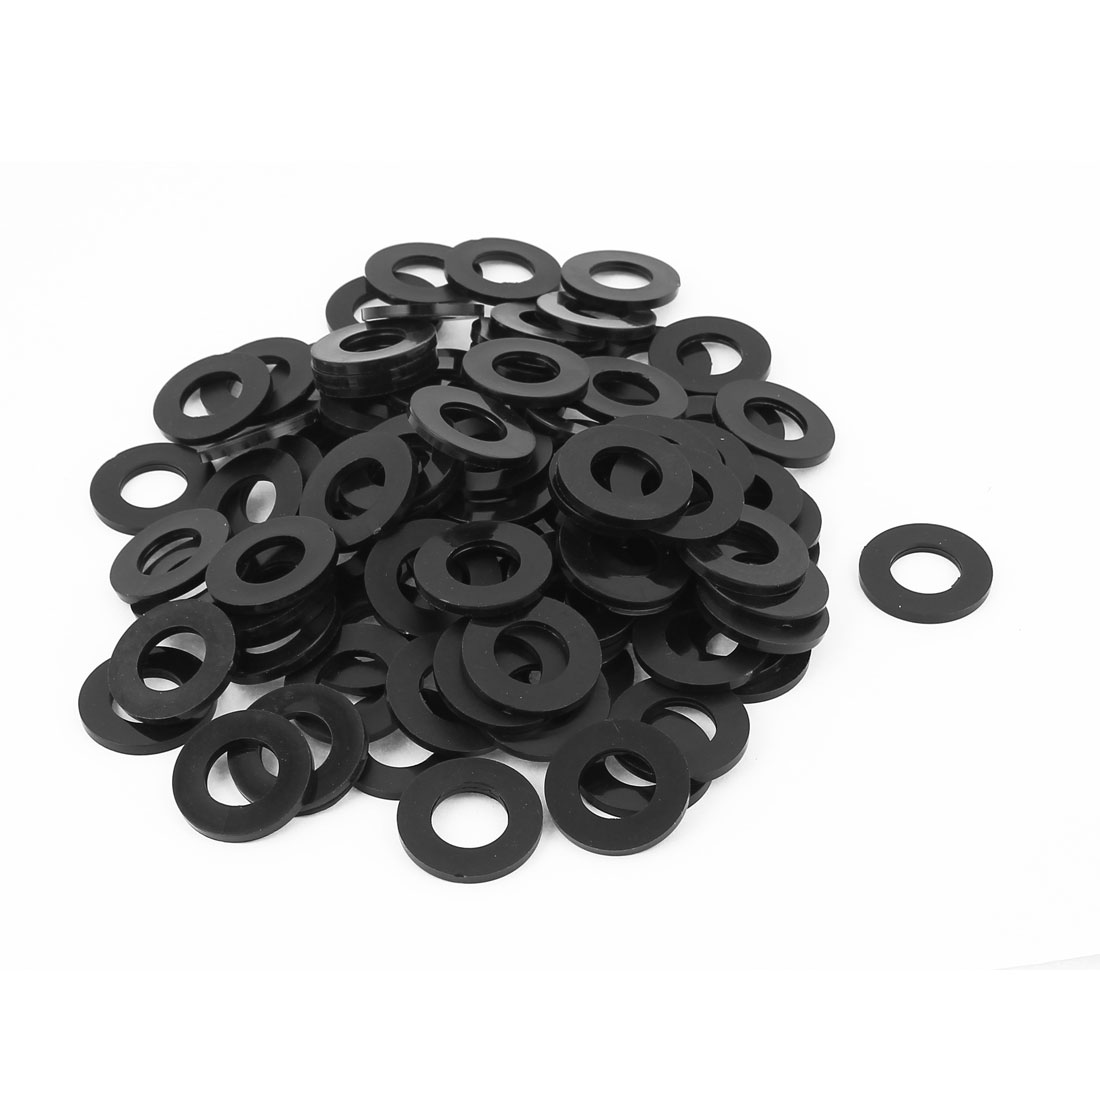 100pcs Round Insulation Nylon Flat Spacer Washer Gasket Ring 14 x 27 x 2.5mm Black